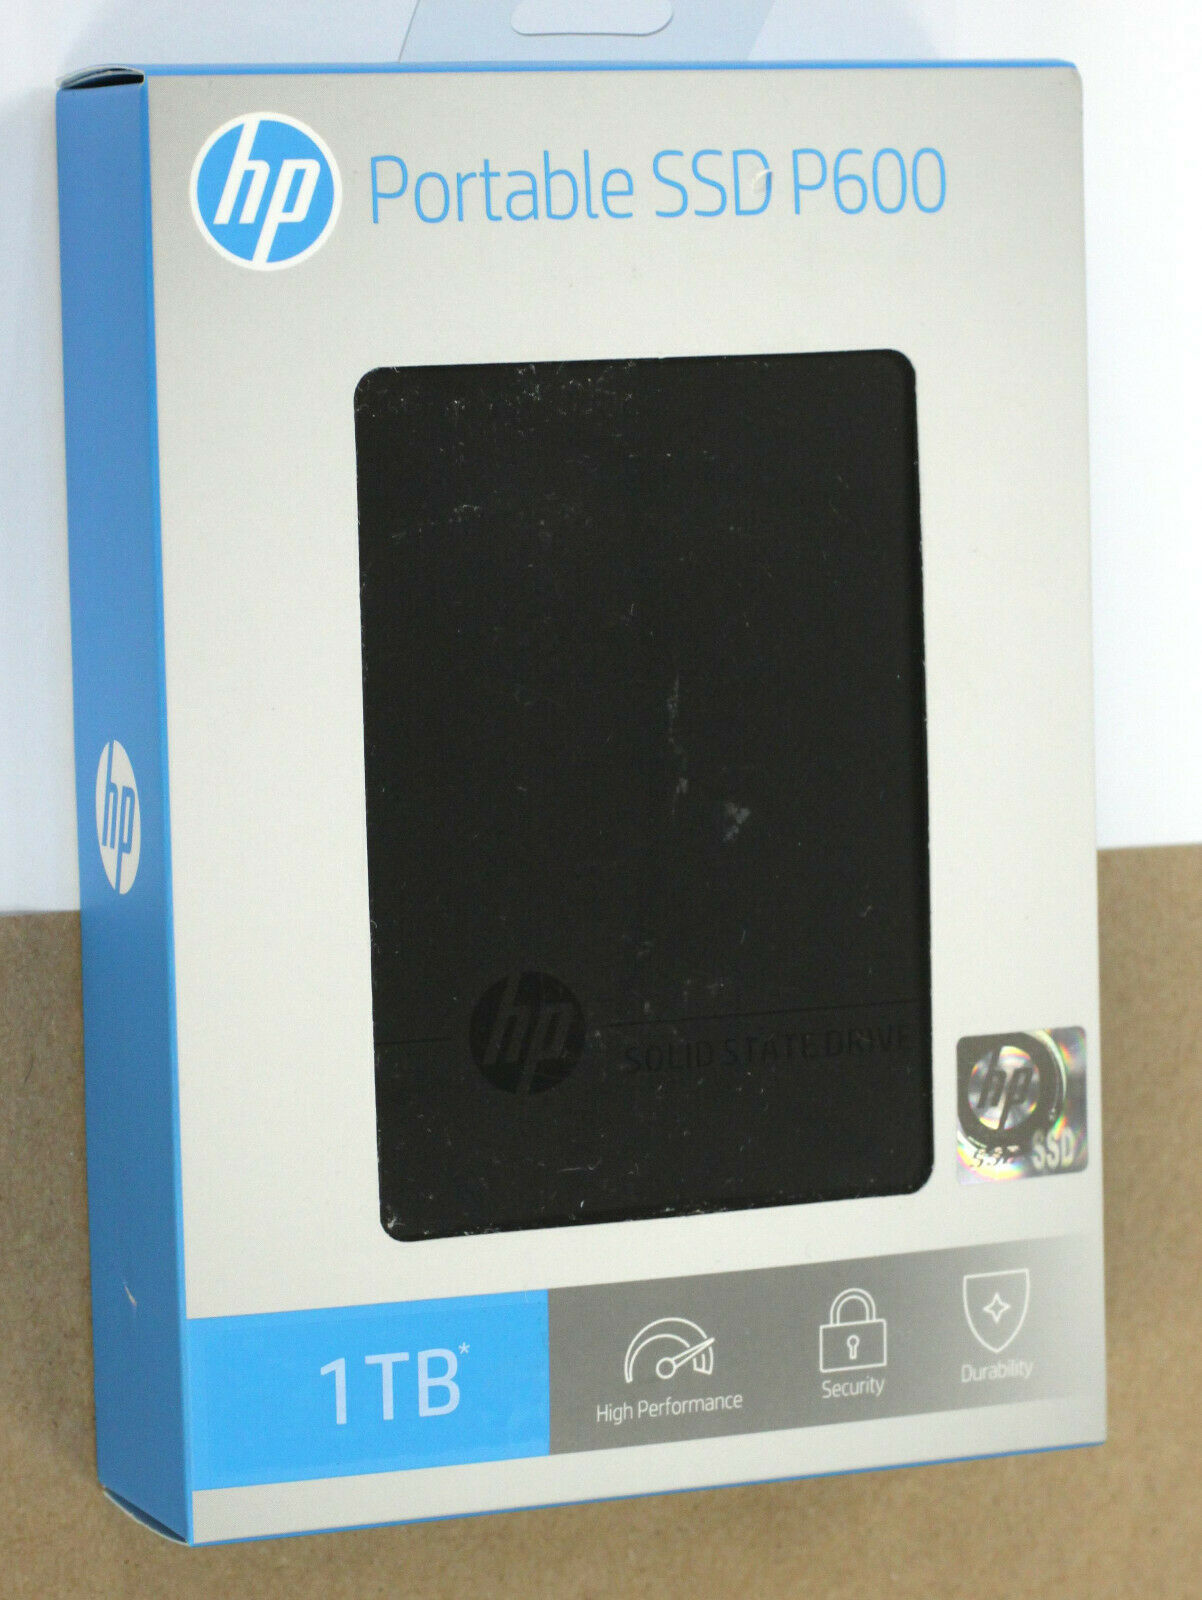 HP 1TB Portable SSD P600 USB 3.1 External Solid State Drive. Buy it now for 94.95